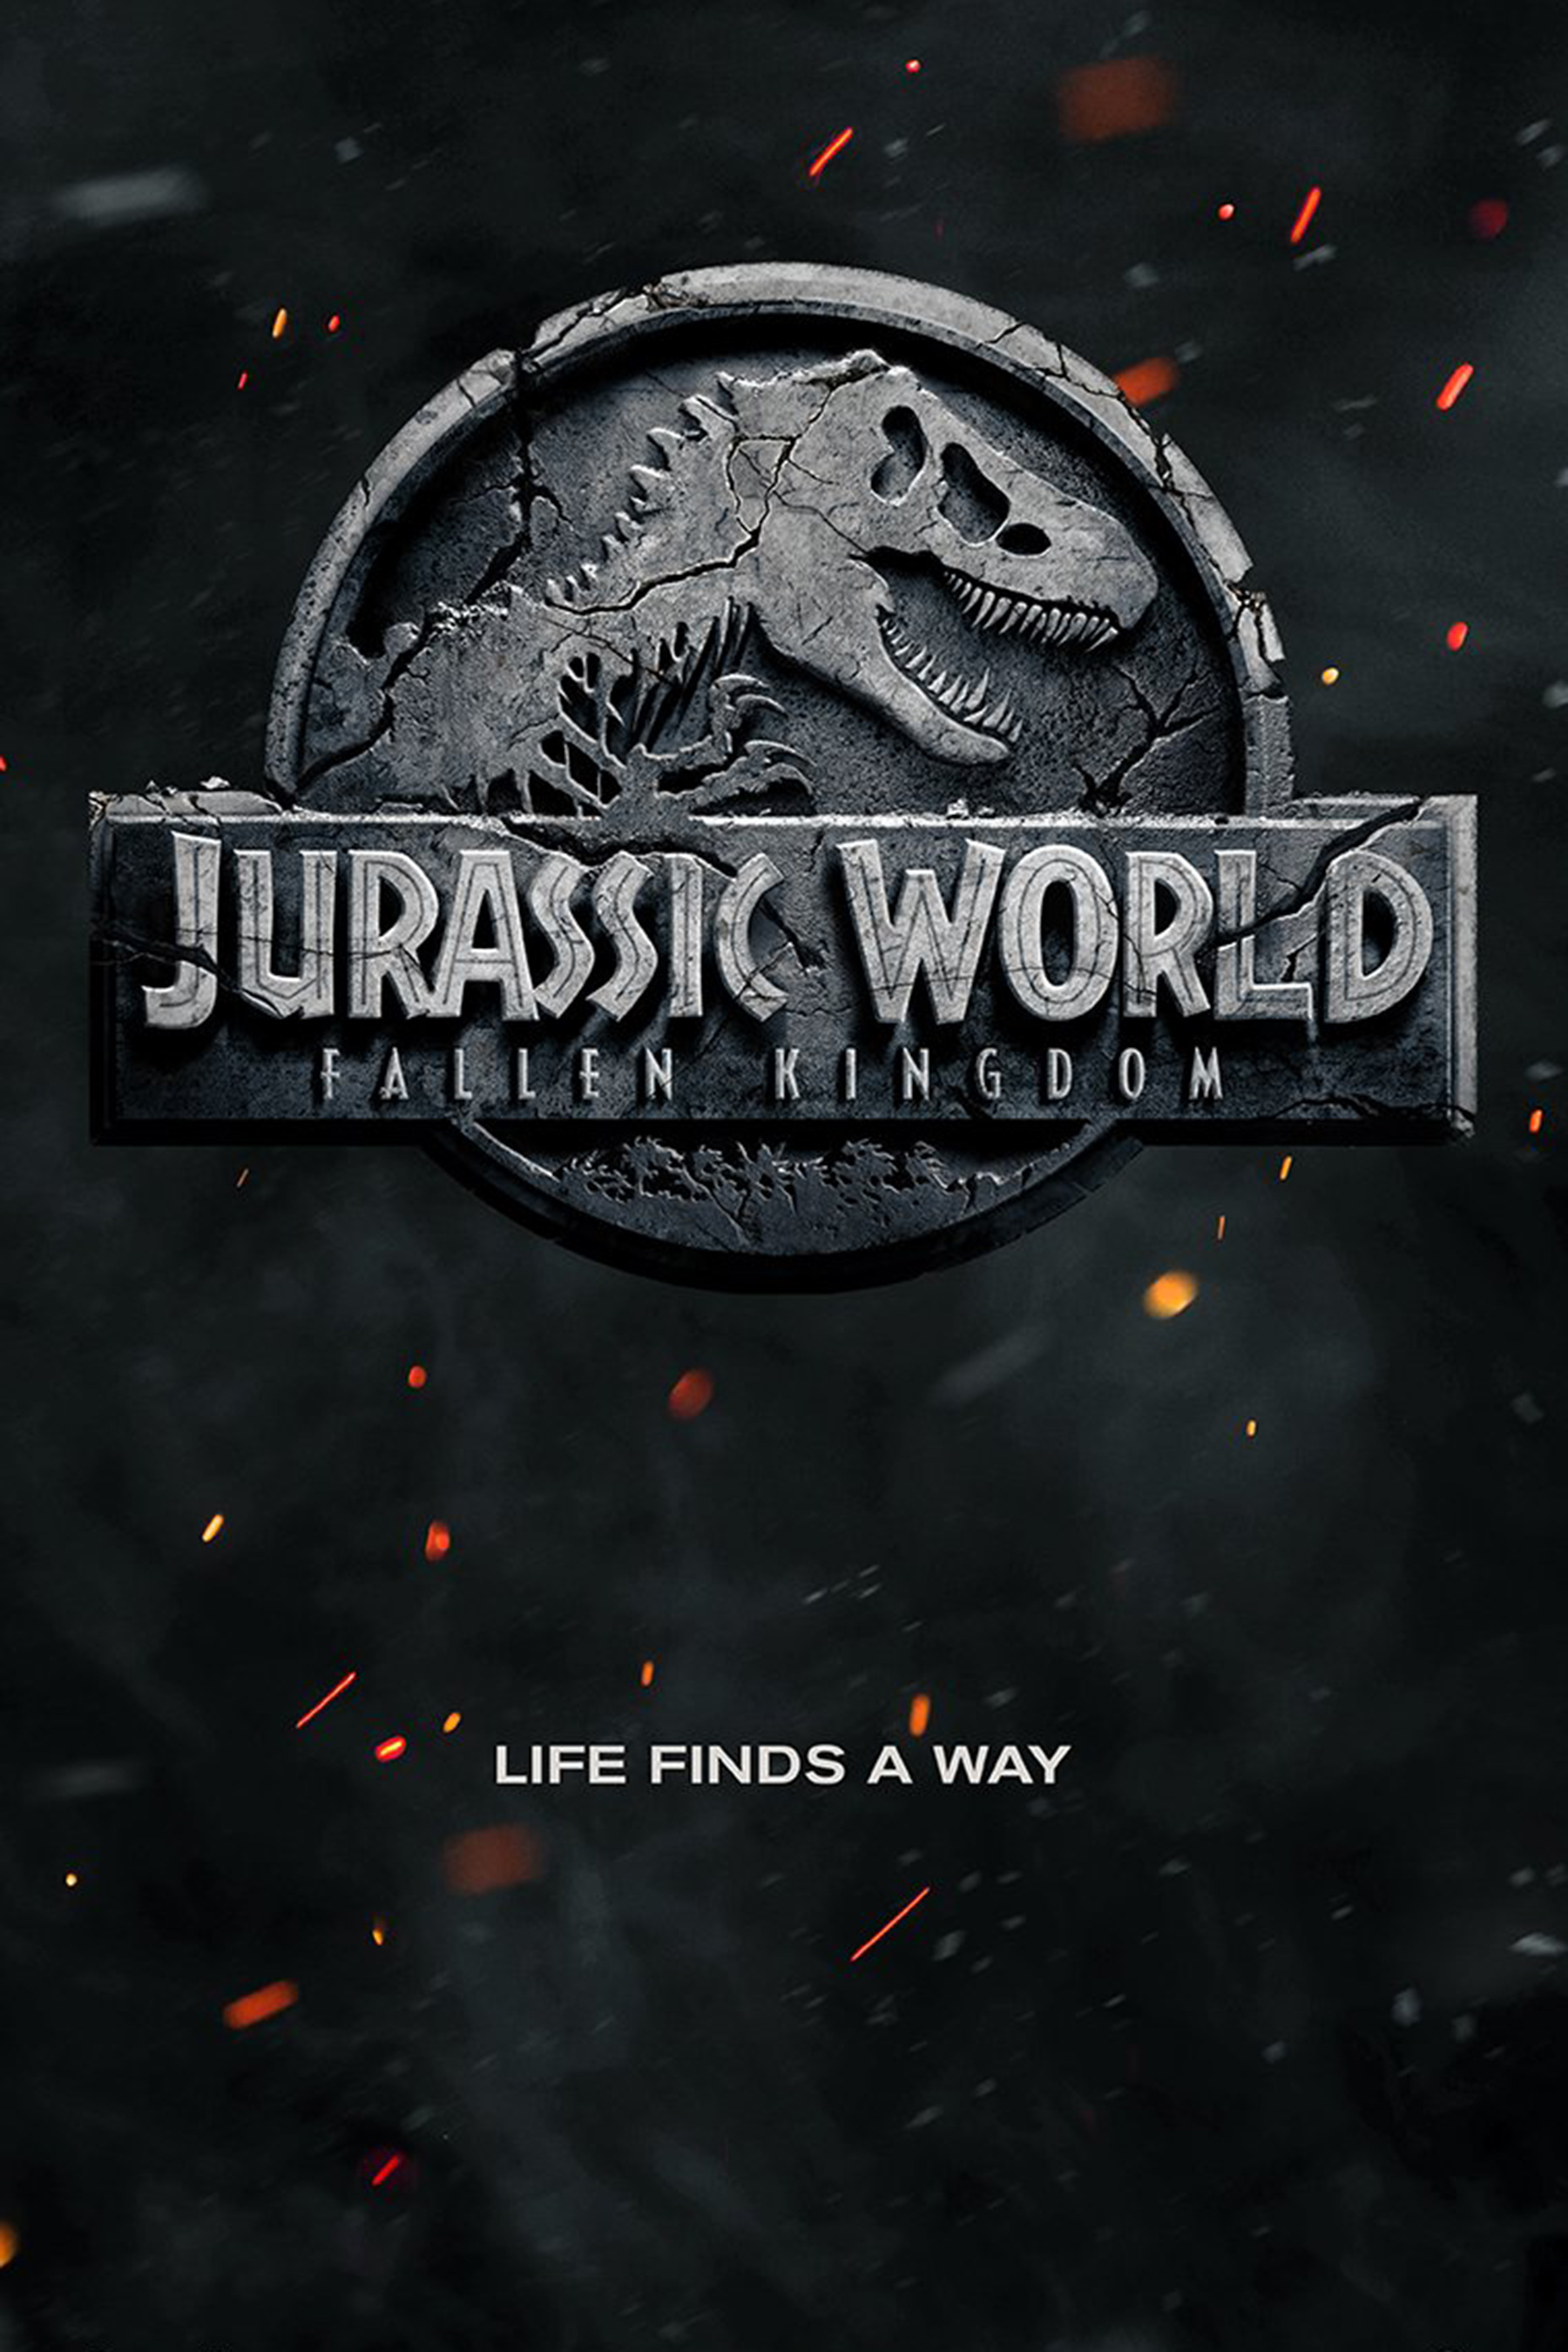 jurassic-world-fallen-kingdom.jpg